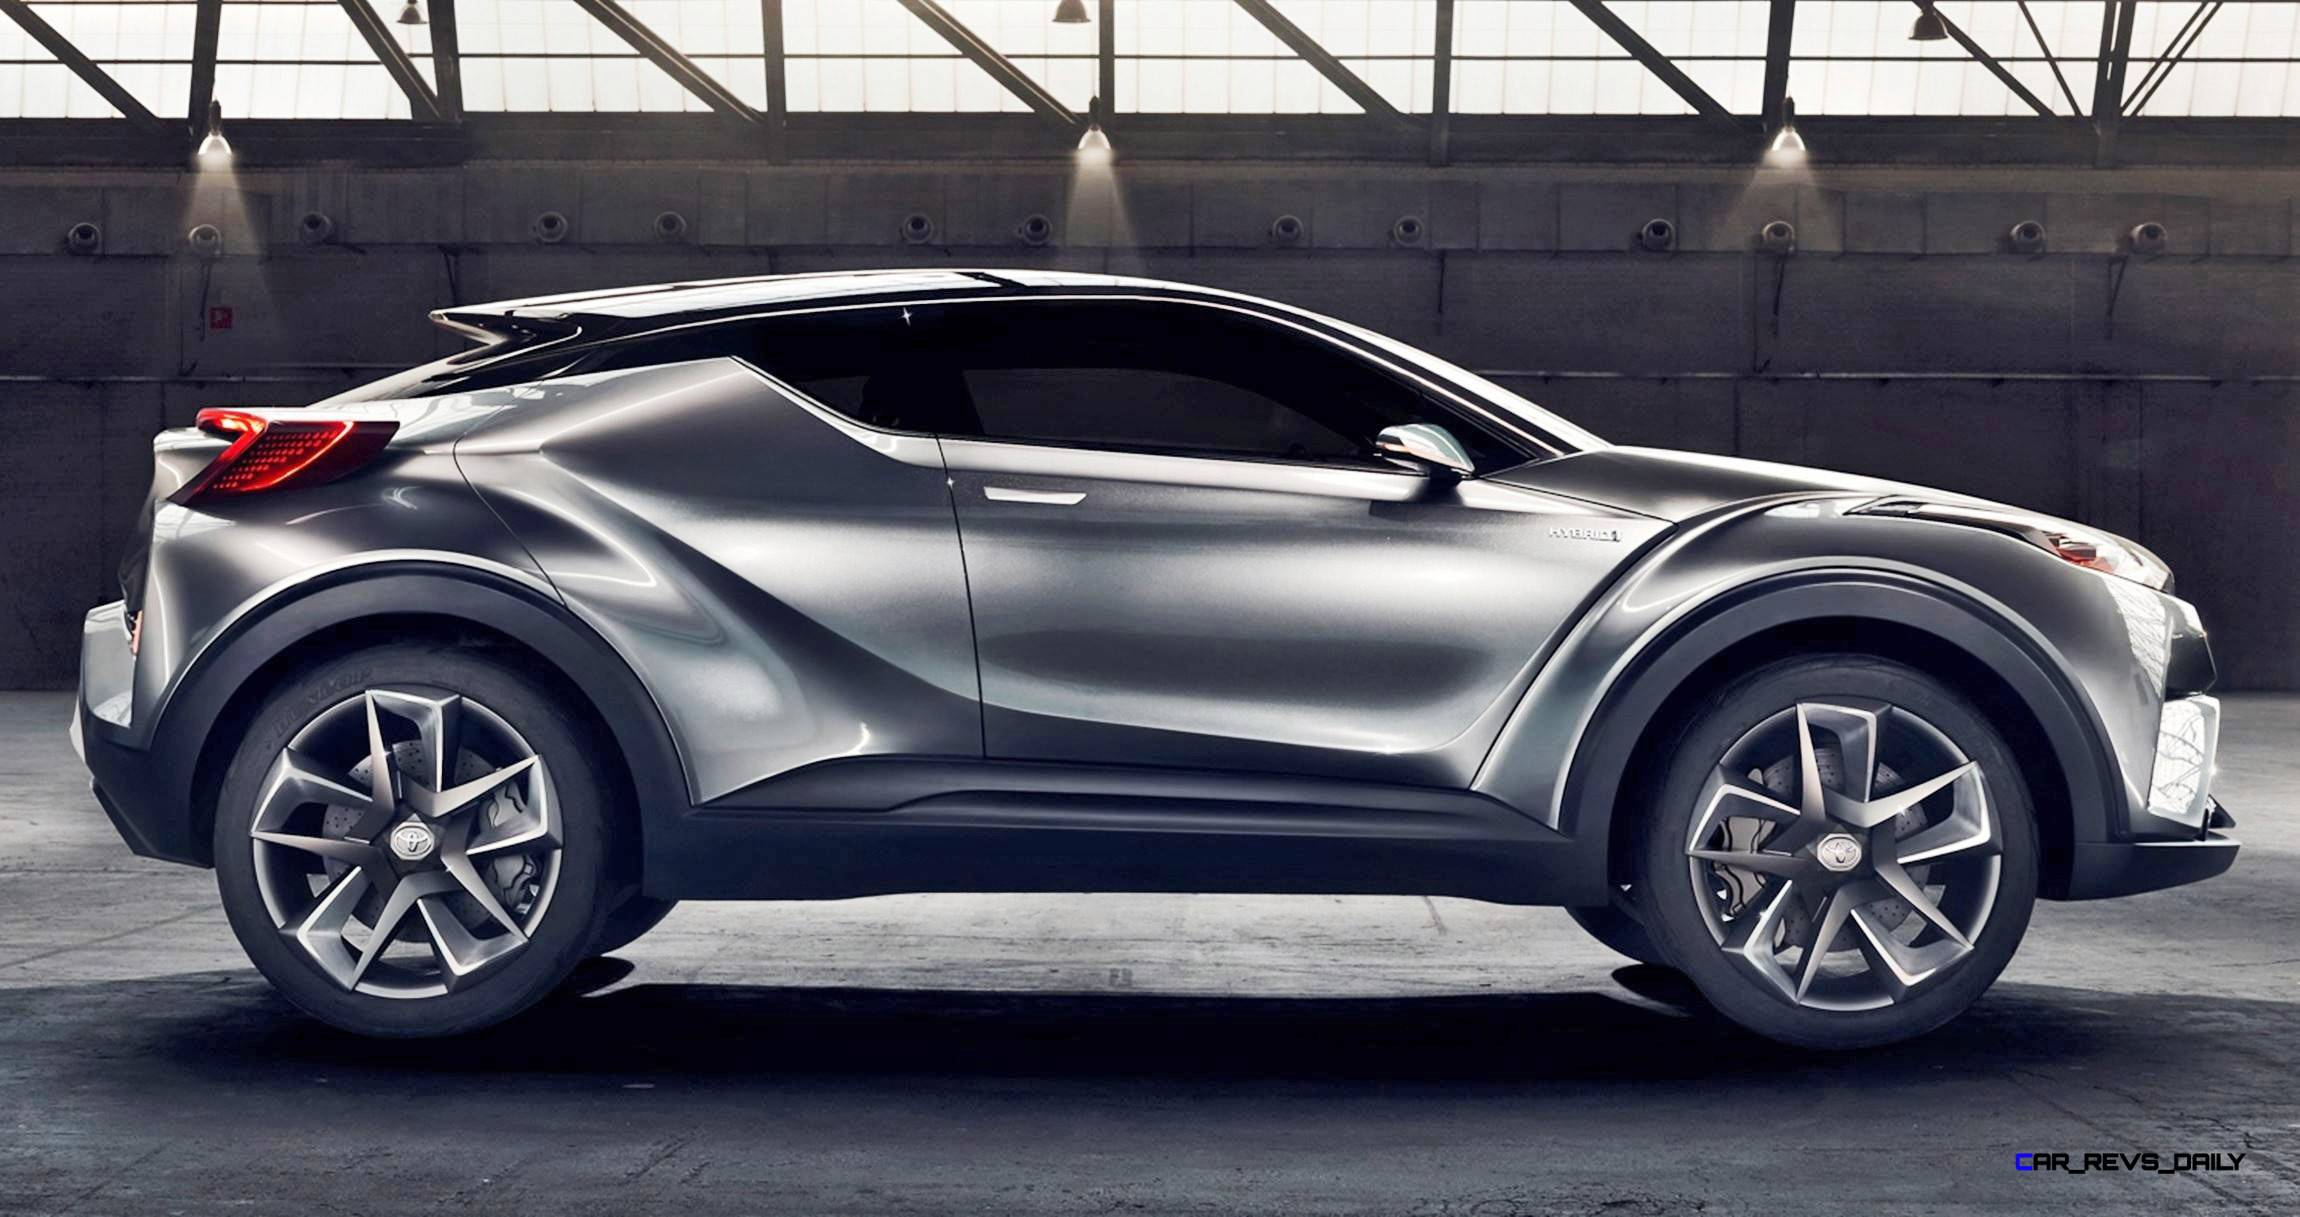 2015 Toyota C-HR Concept 4-Door 6